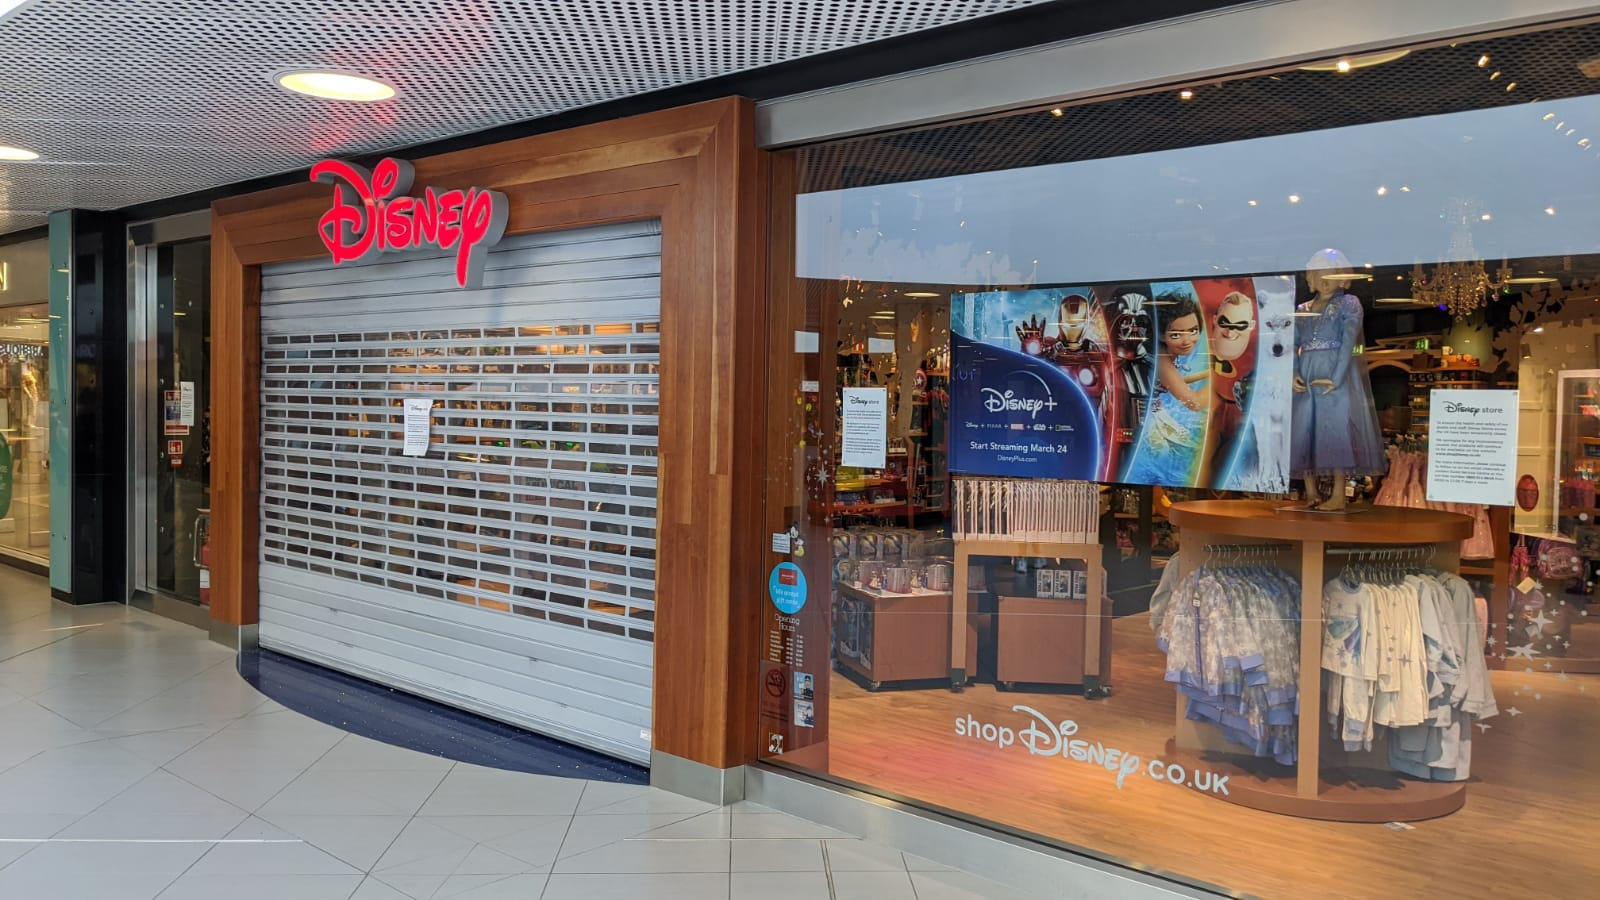 The Disney Store in the Bon Accord centre today